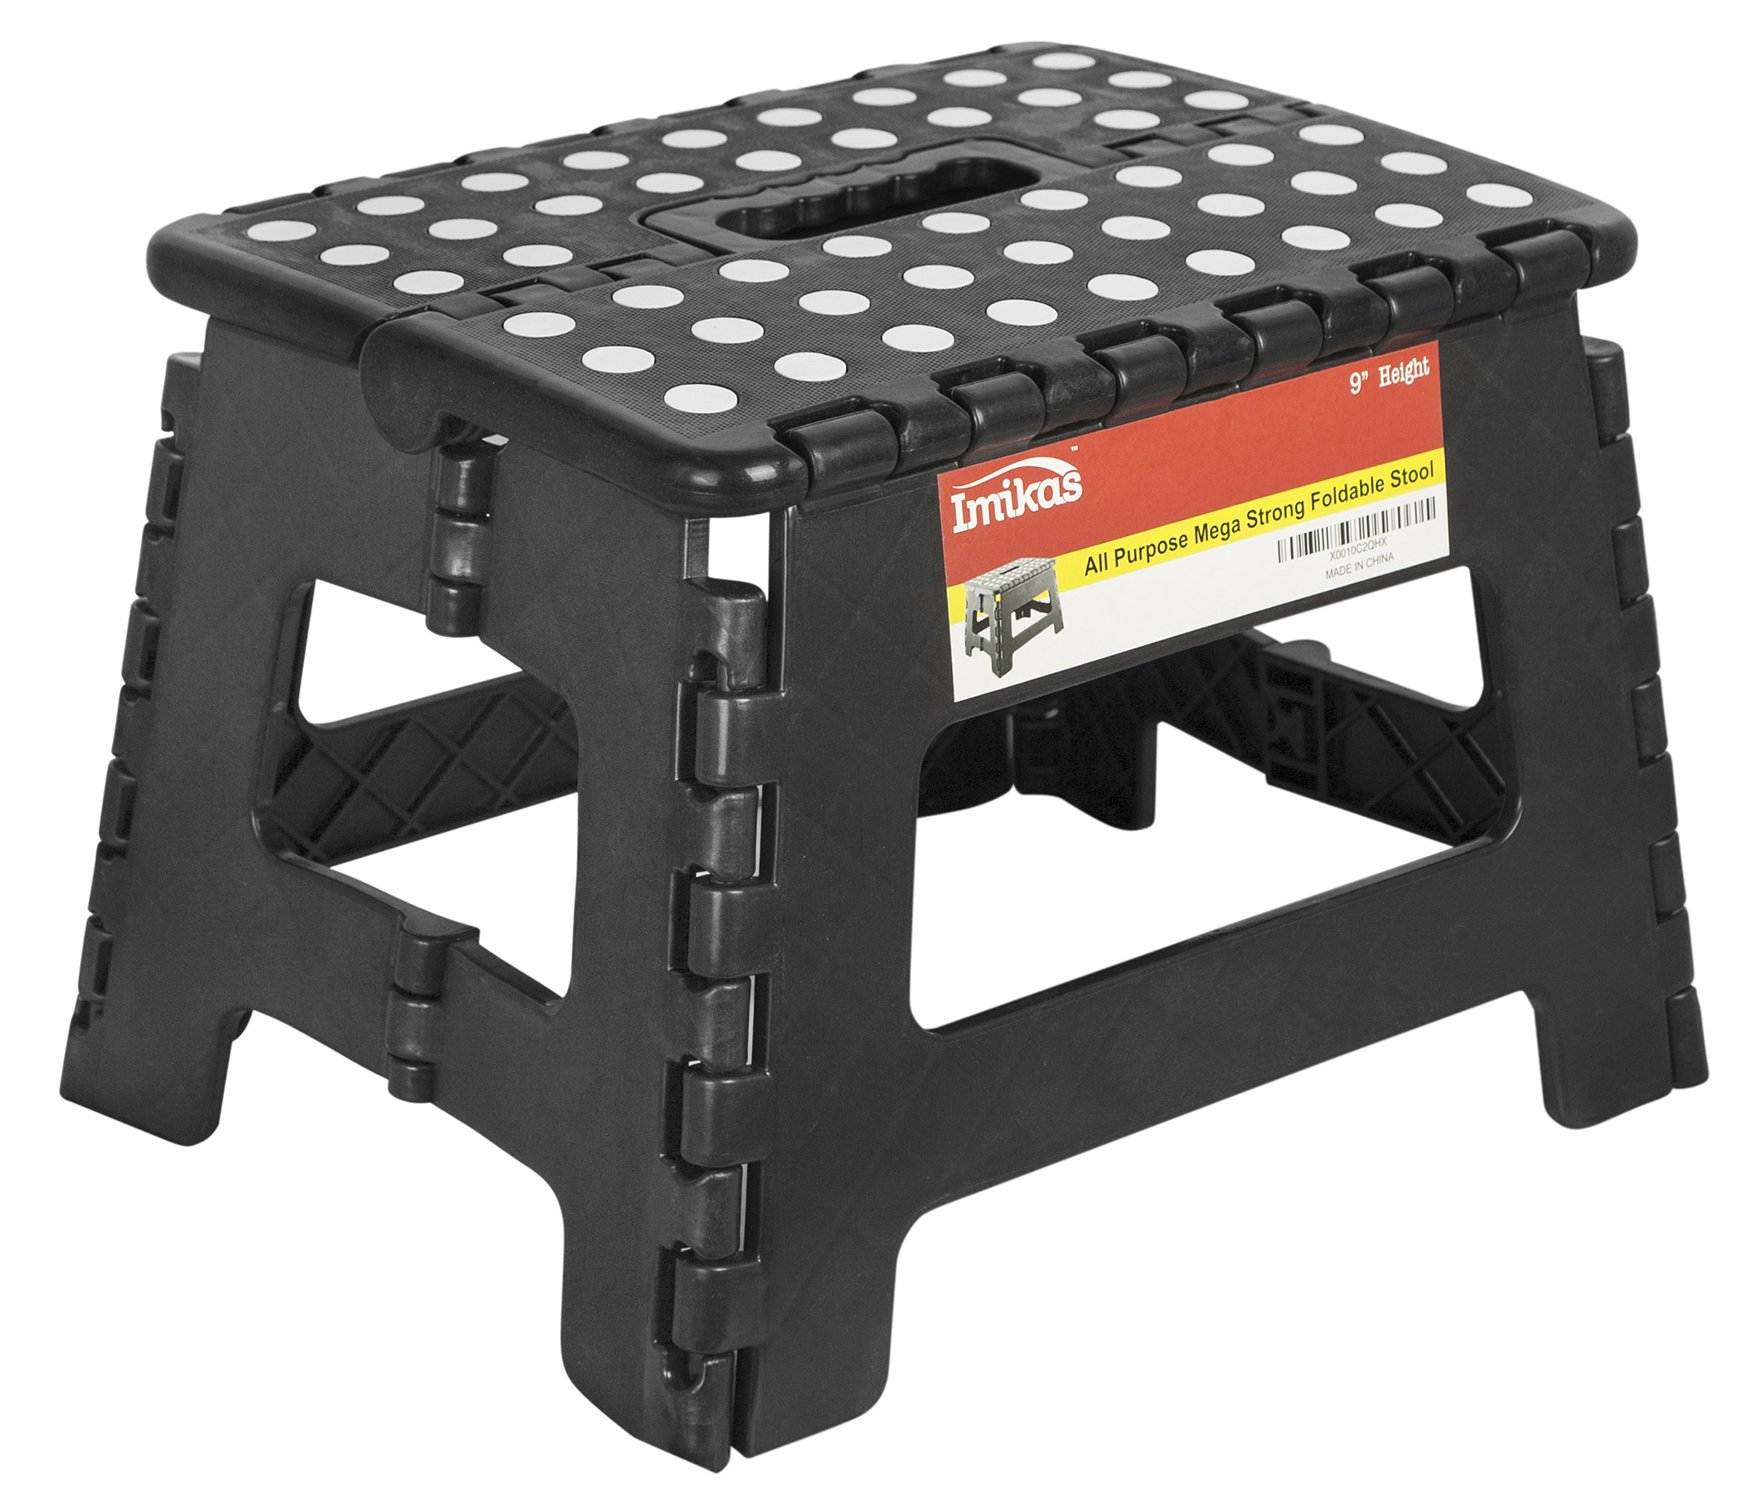 Folding Step Stool - 9 inch Height Premium Heavy Duty Foldable Stool For Kids & Adults, Kitchen Garden Bathroom Stepping Stool From ImiKas